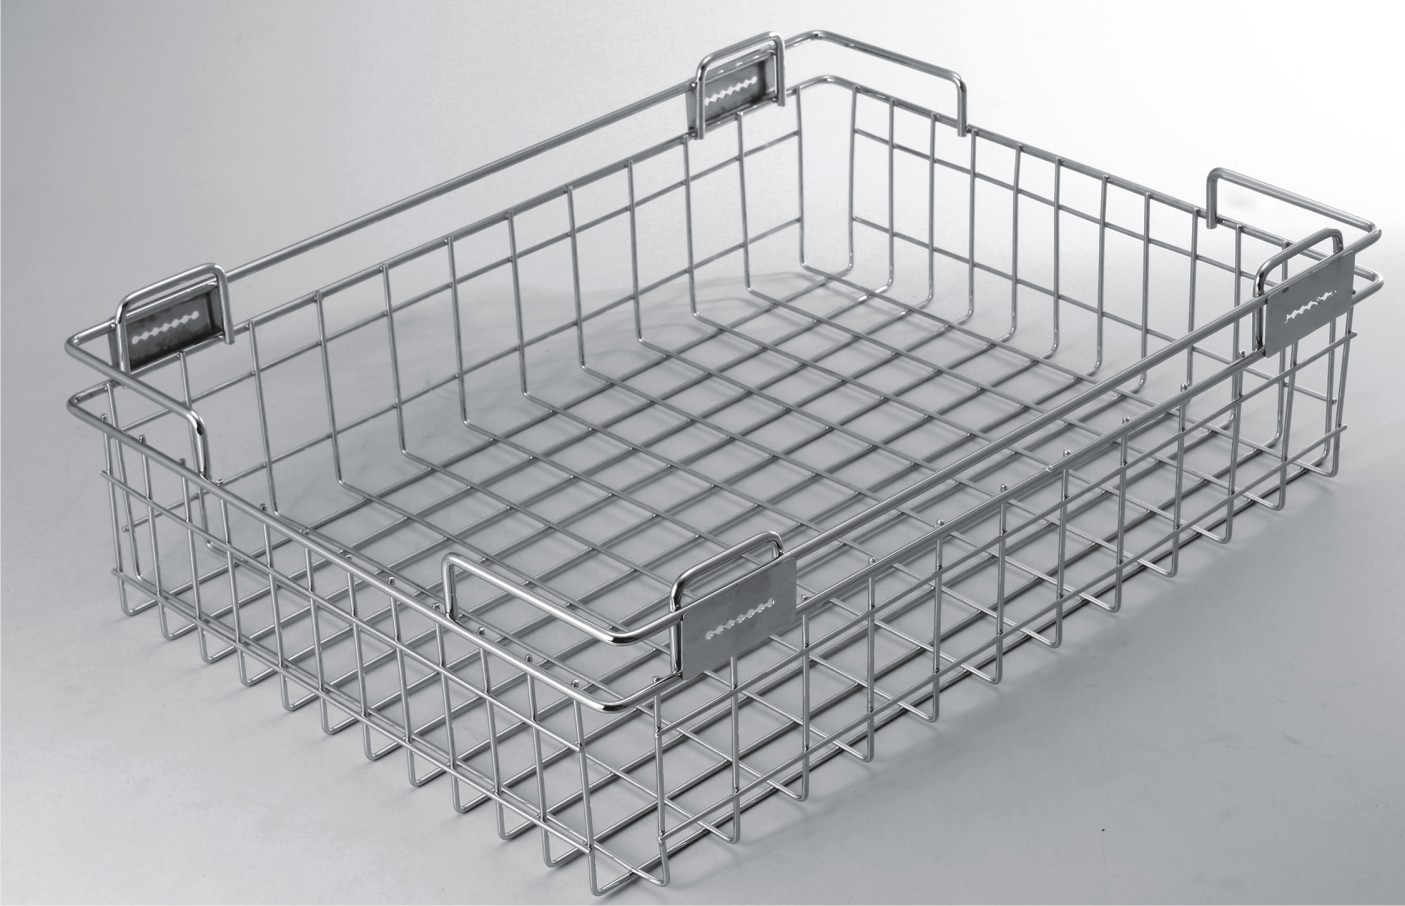 Stainless Steel Kitchen Basket Ss Kitchen Basket Steel